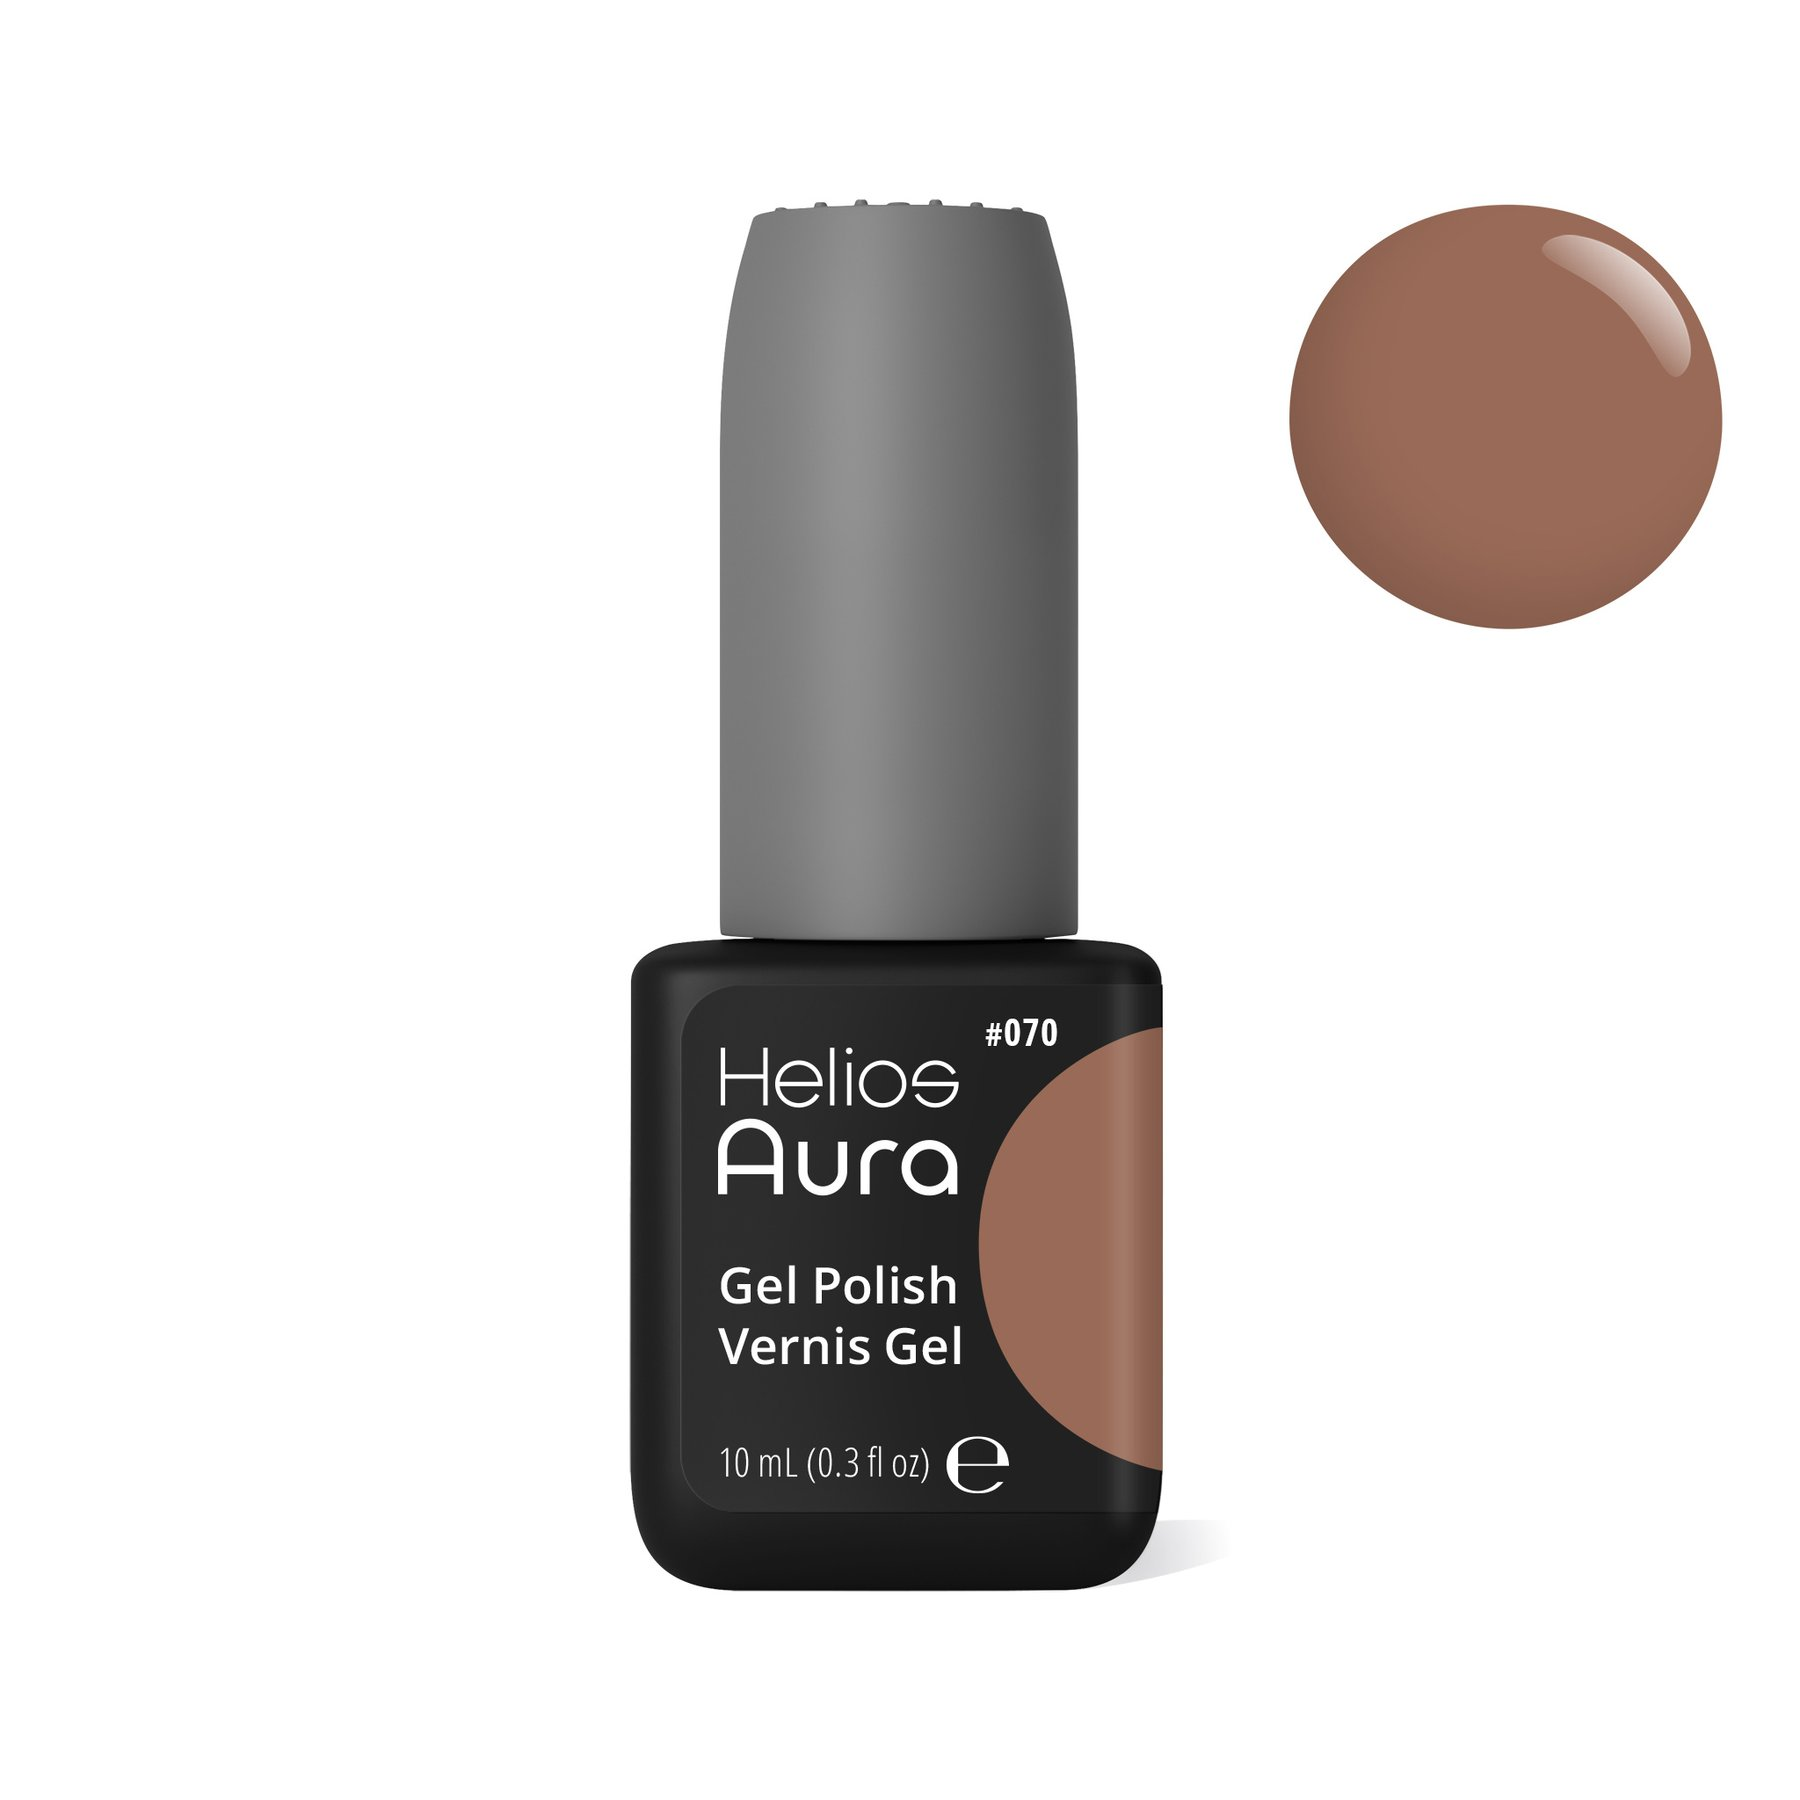 AURA GEL POLISH FORGET LOVE, FALL IN COFFEE - Nails - Aura Helios (gelish) dluxpro